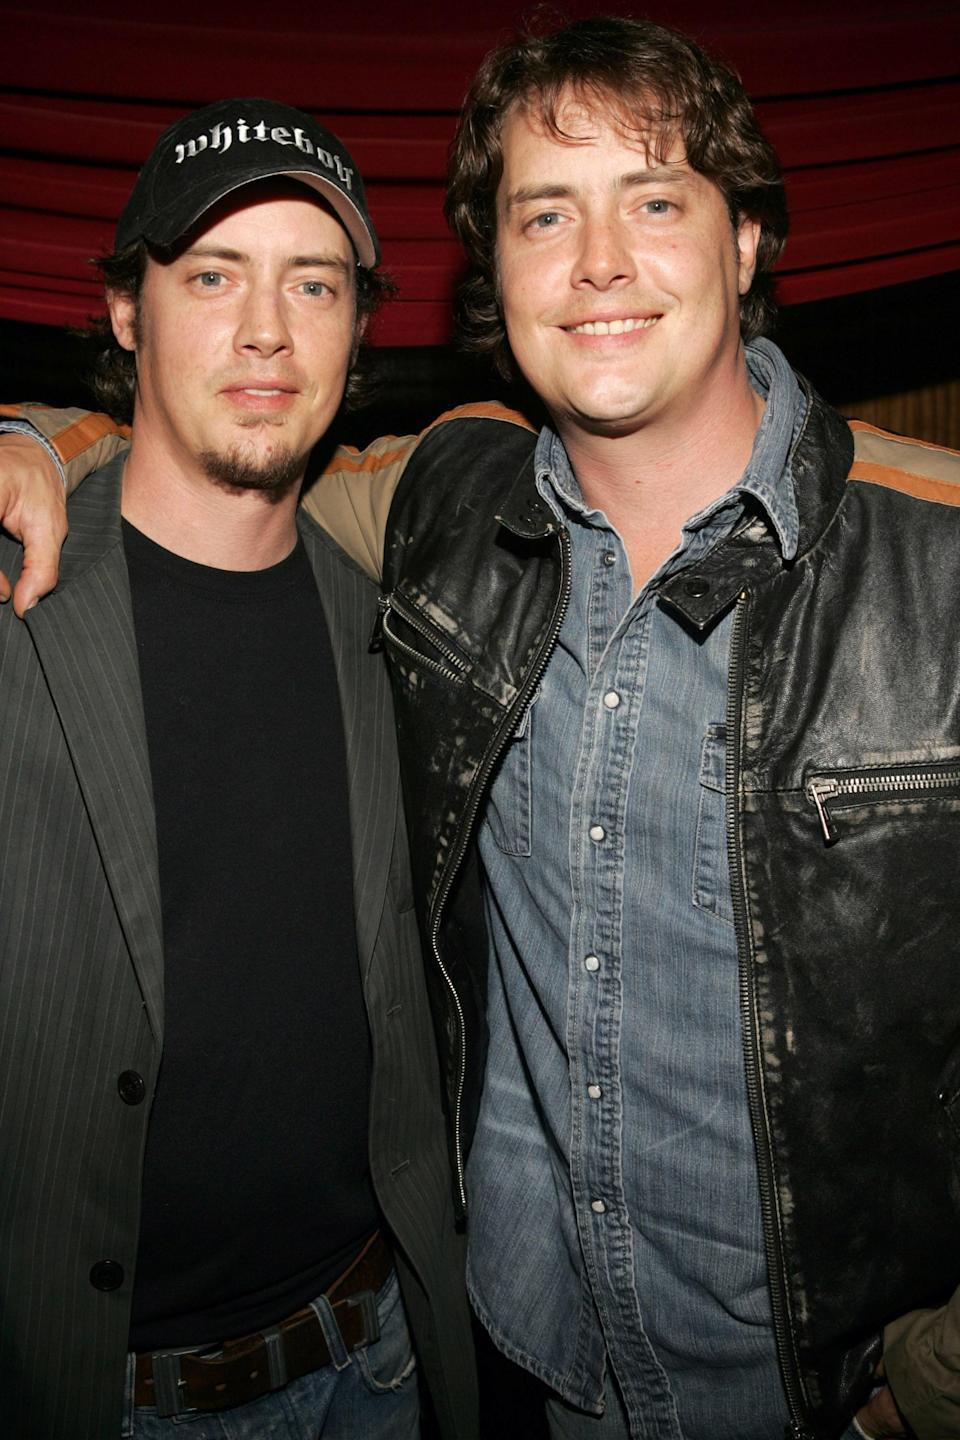 Jeremy London and Jason London's careers mimicked each other in the beginning. Jeremy booked roles in two made-for-TV movies before landing a starring role in the series, <em>I'll Fly Away</em>. The way he got the part was a bit unusual. Initially, the role was played by Jason, who appeared in the pilot, but when the series was picked up, Jason had already signed on to the movie, <em>The Man in the Moon</em>. So, he brilliantly recommended that his twin take over. Jeremy continued to star on the show until Jason jumped in for the series' conclusion.